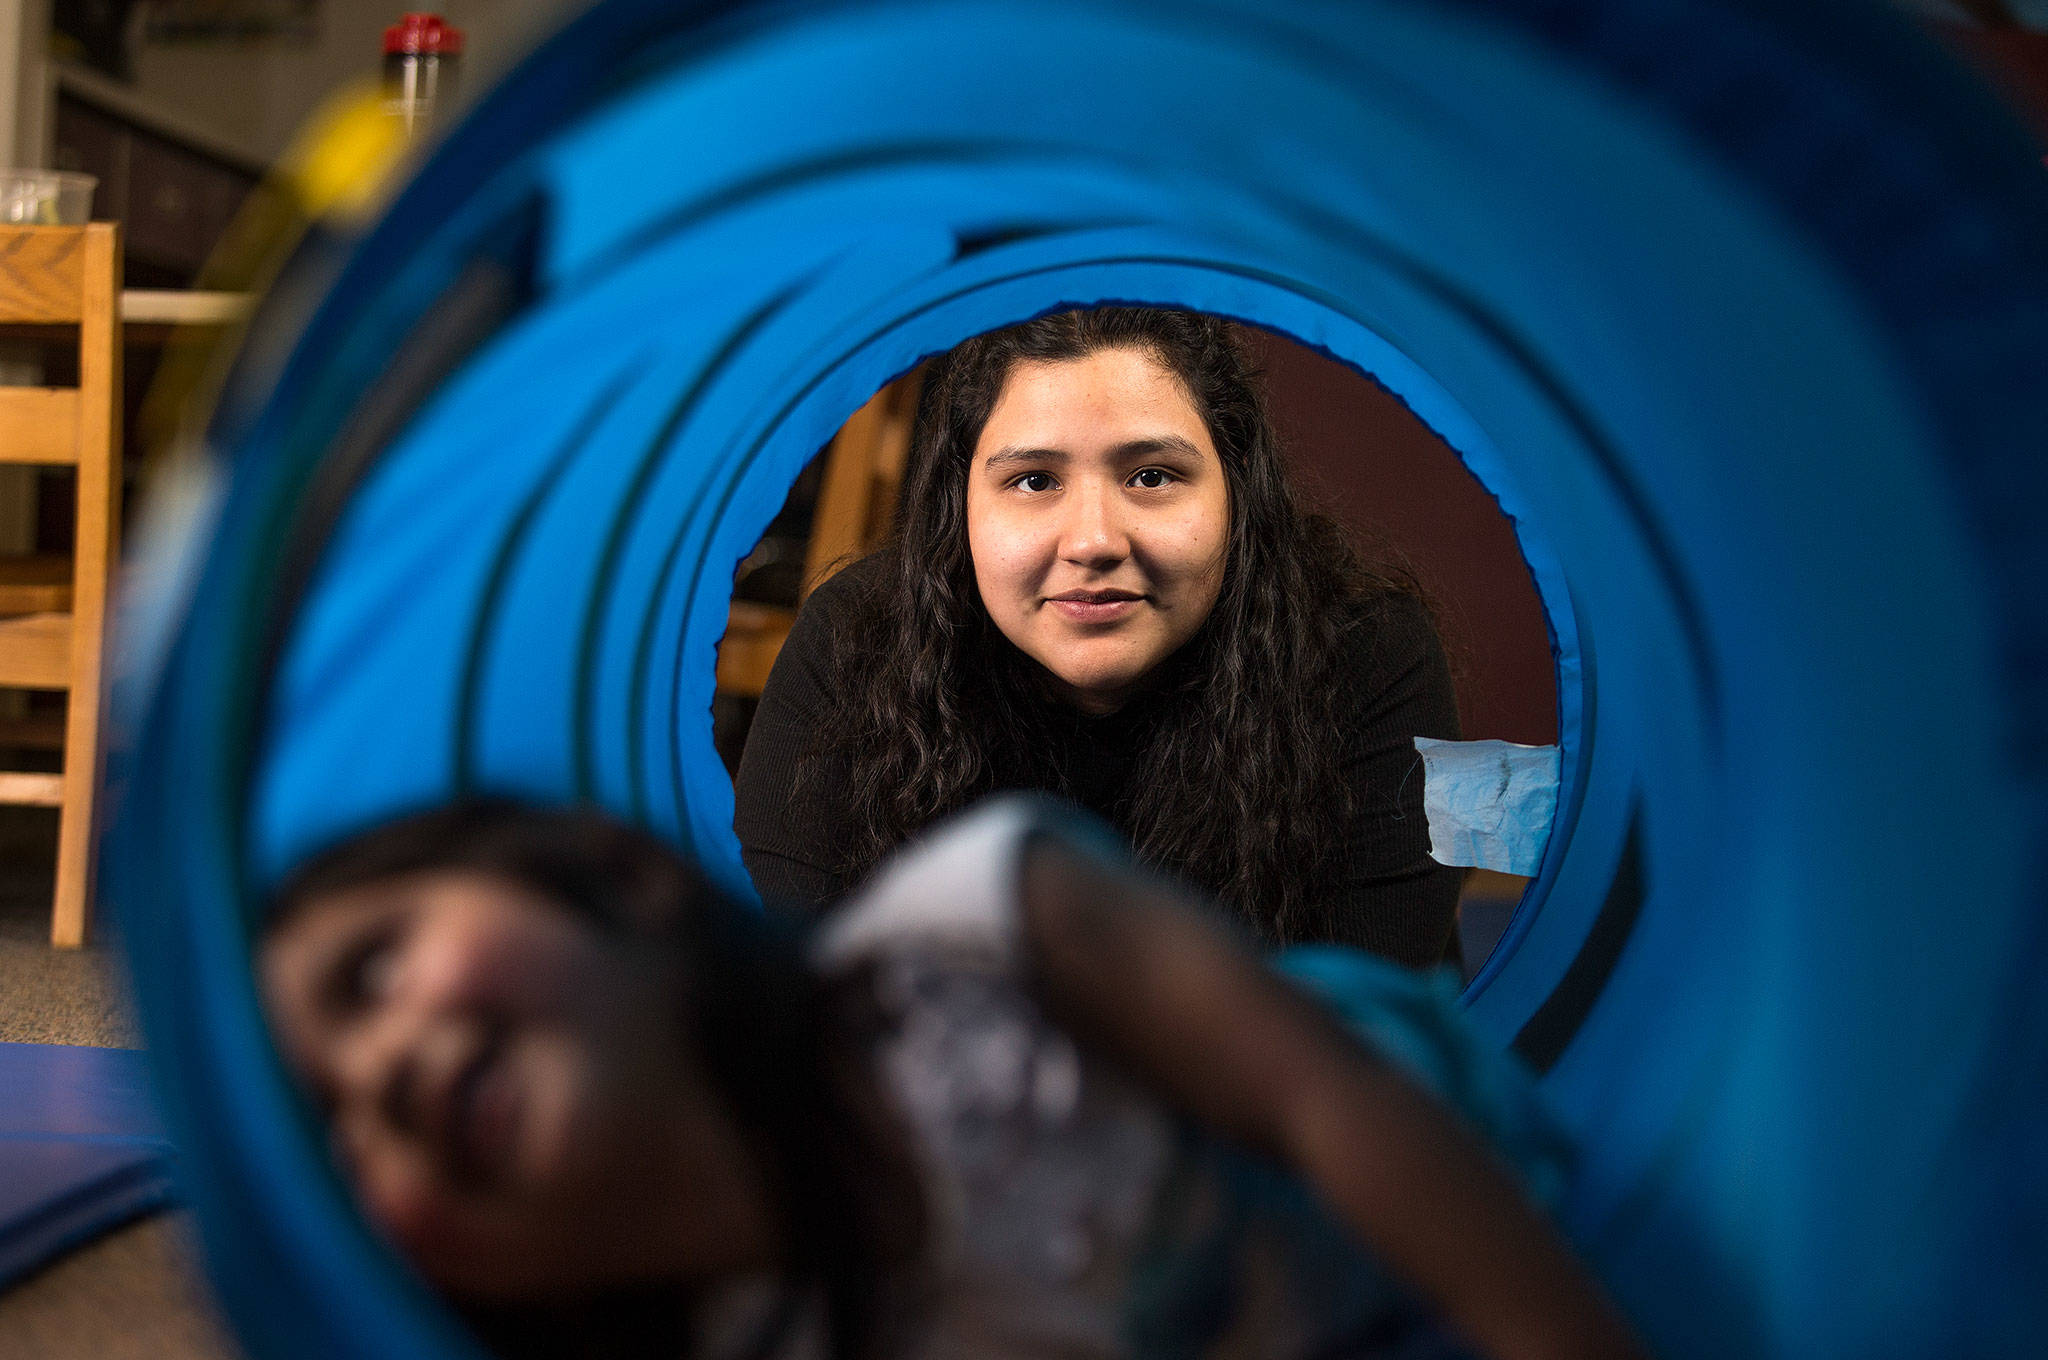 Sequoia High School's Fernanda Perez Vasquez carries a full load of classes each term, works every weekend and cares for her two-year-old daughter. She plans to study medicine at Everett Community College and ultimately become a doctor. (Andy Bronson / The Herald)